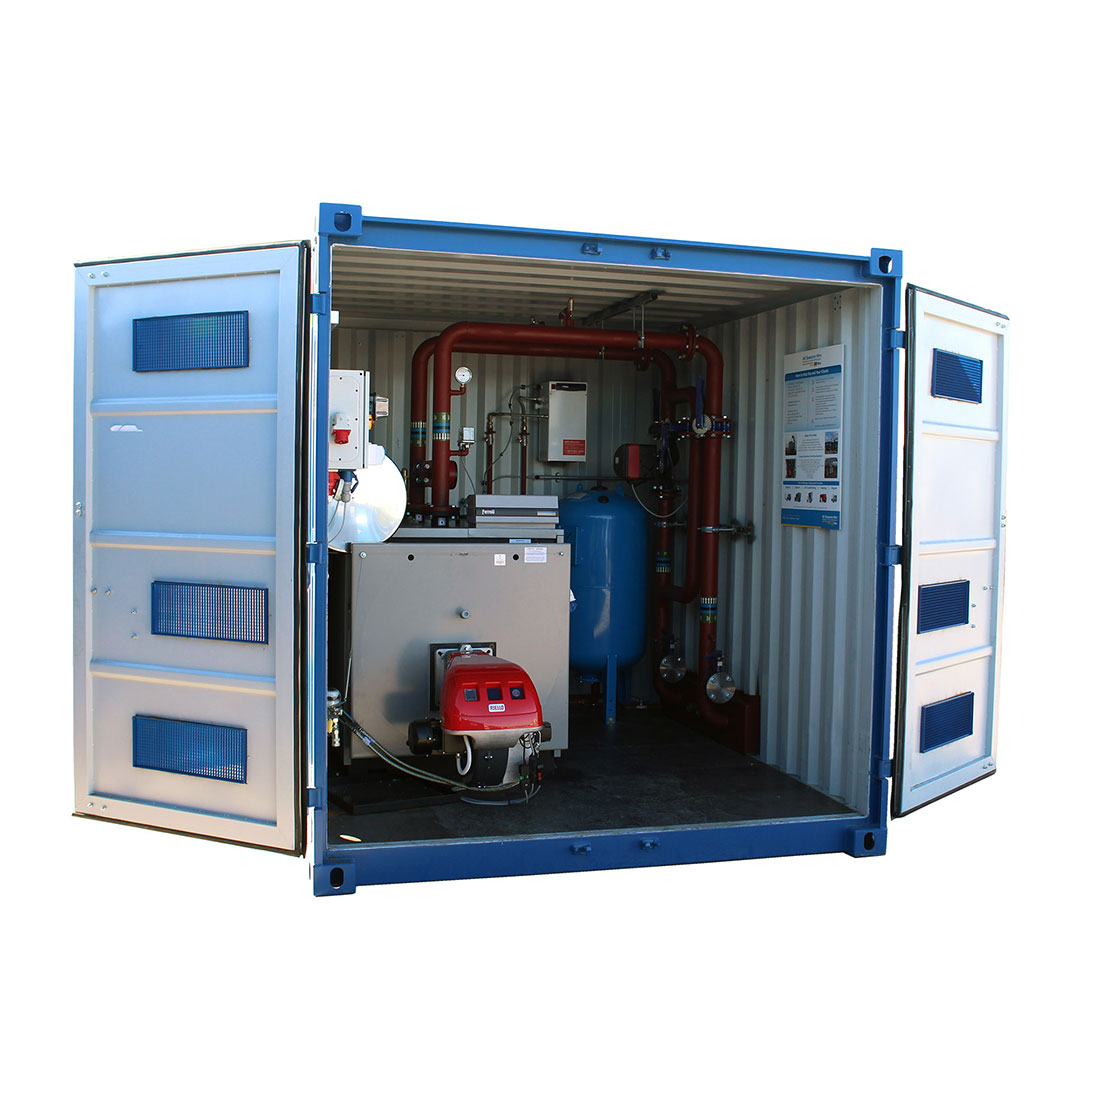 600kW Containerised Boiler